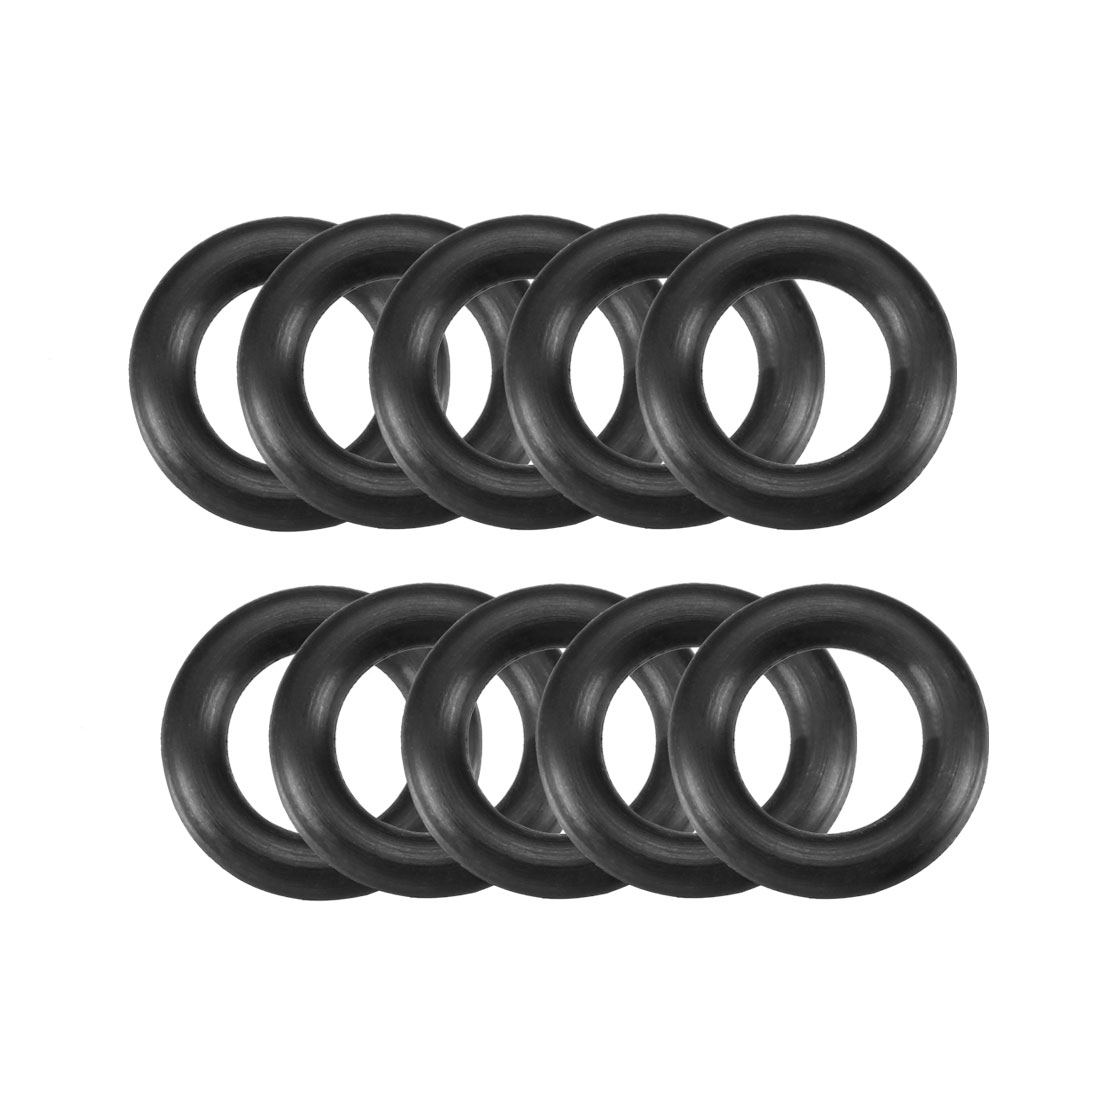 10 Pcs 17mm x 10mm x 3.5mm Mechanical Rubber O Ring Oil Seal Gaskets Black